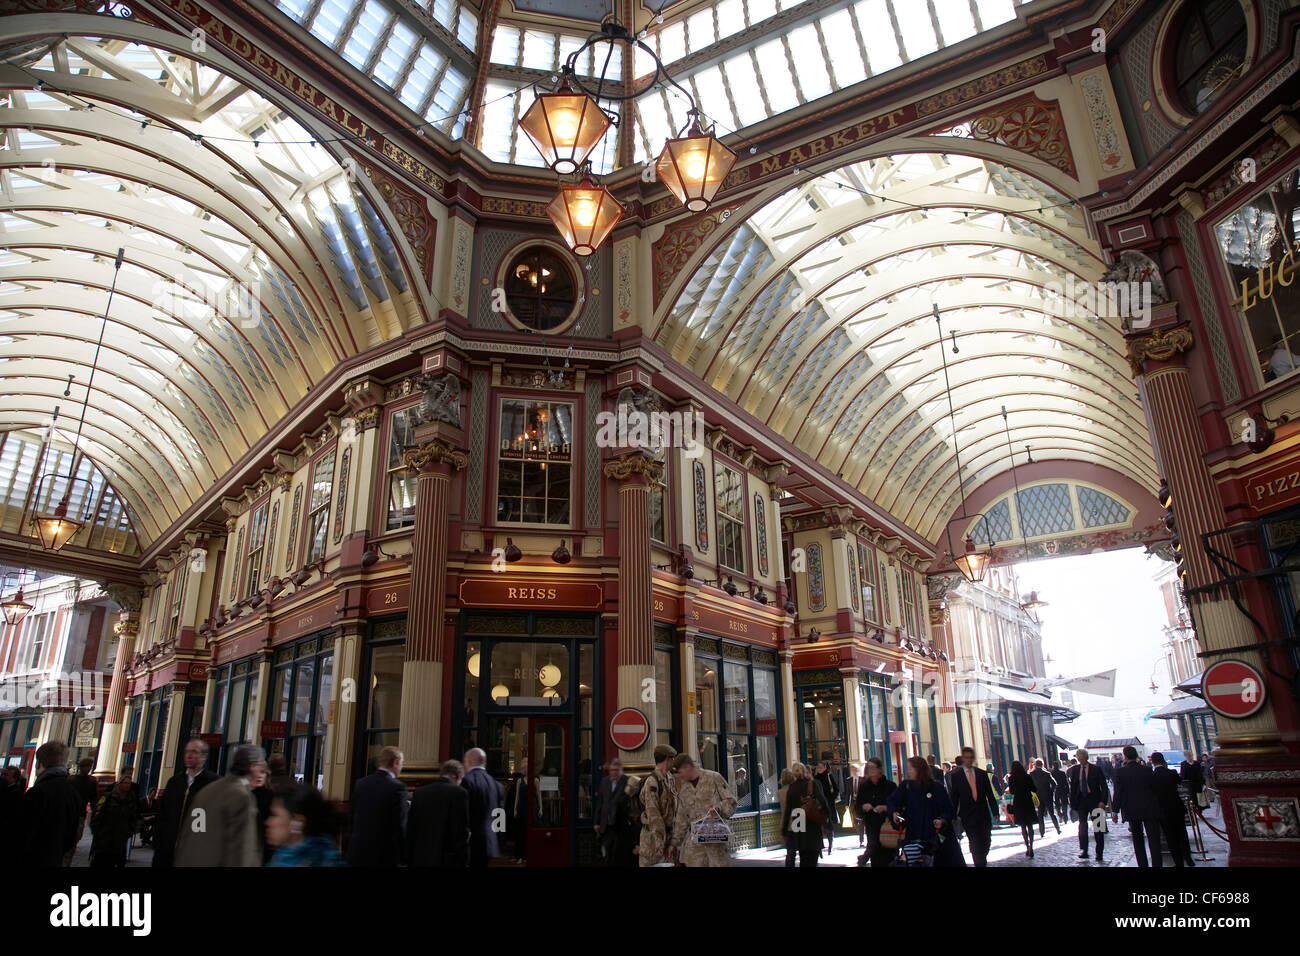 The vaulted ceiling of Leadenhall Market. The market was used to represent the area of London near The Leaky Cauldron - Stock Image